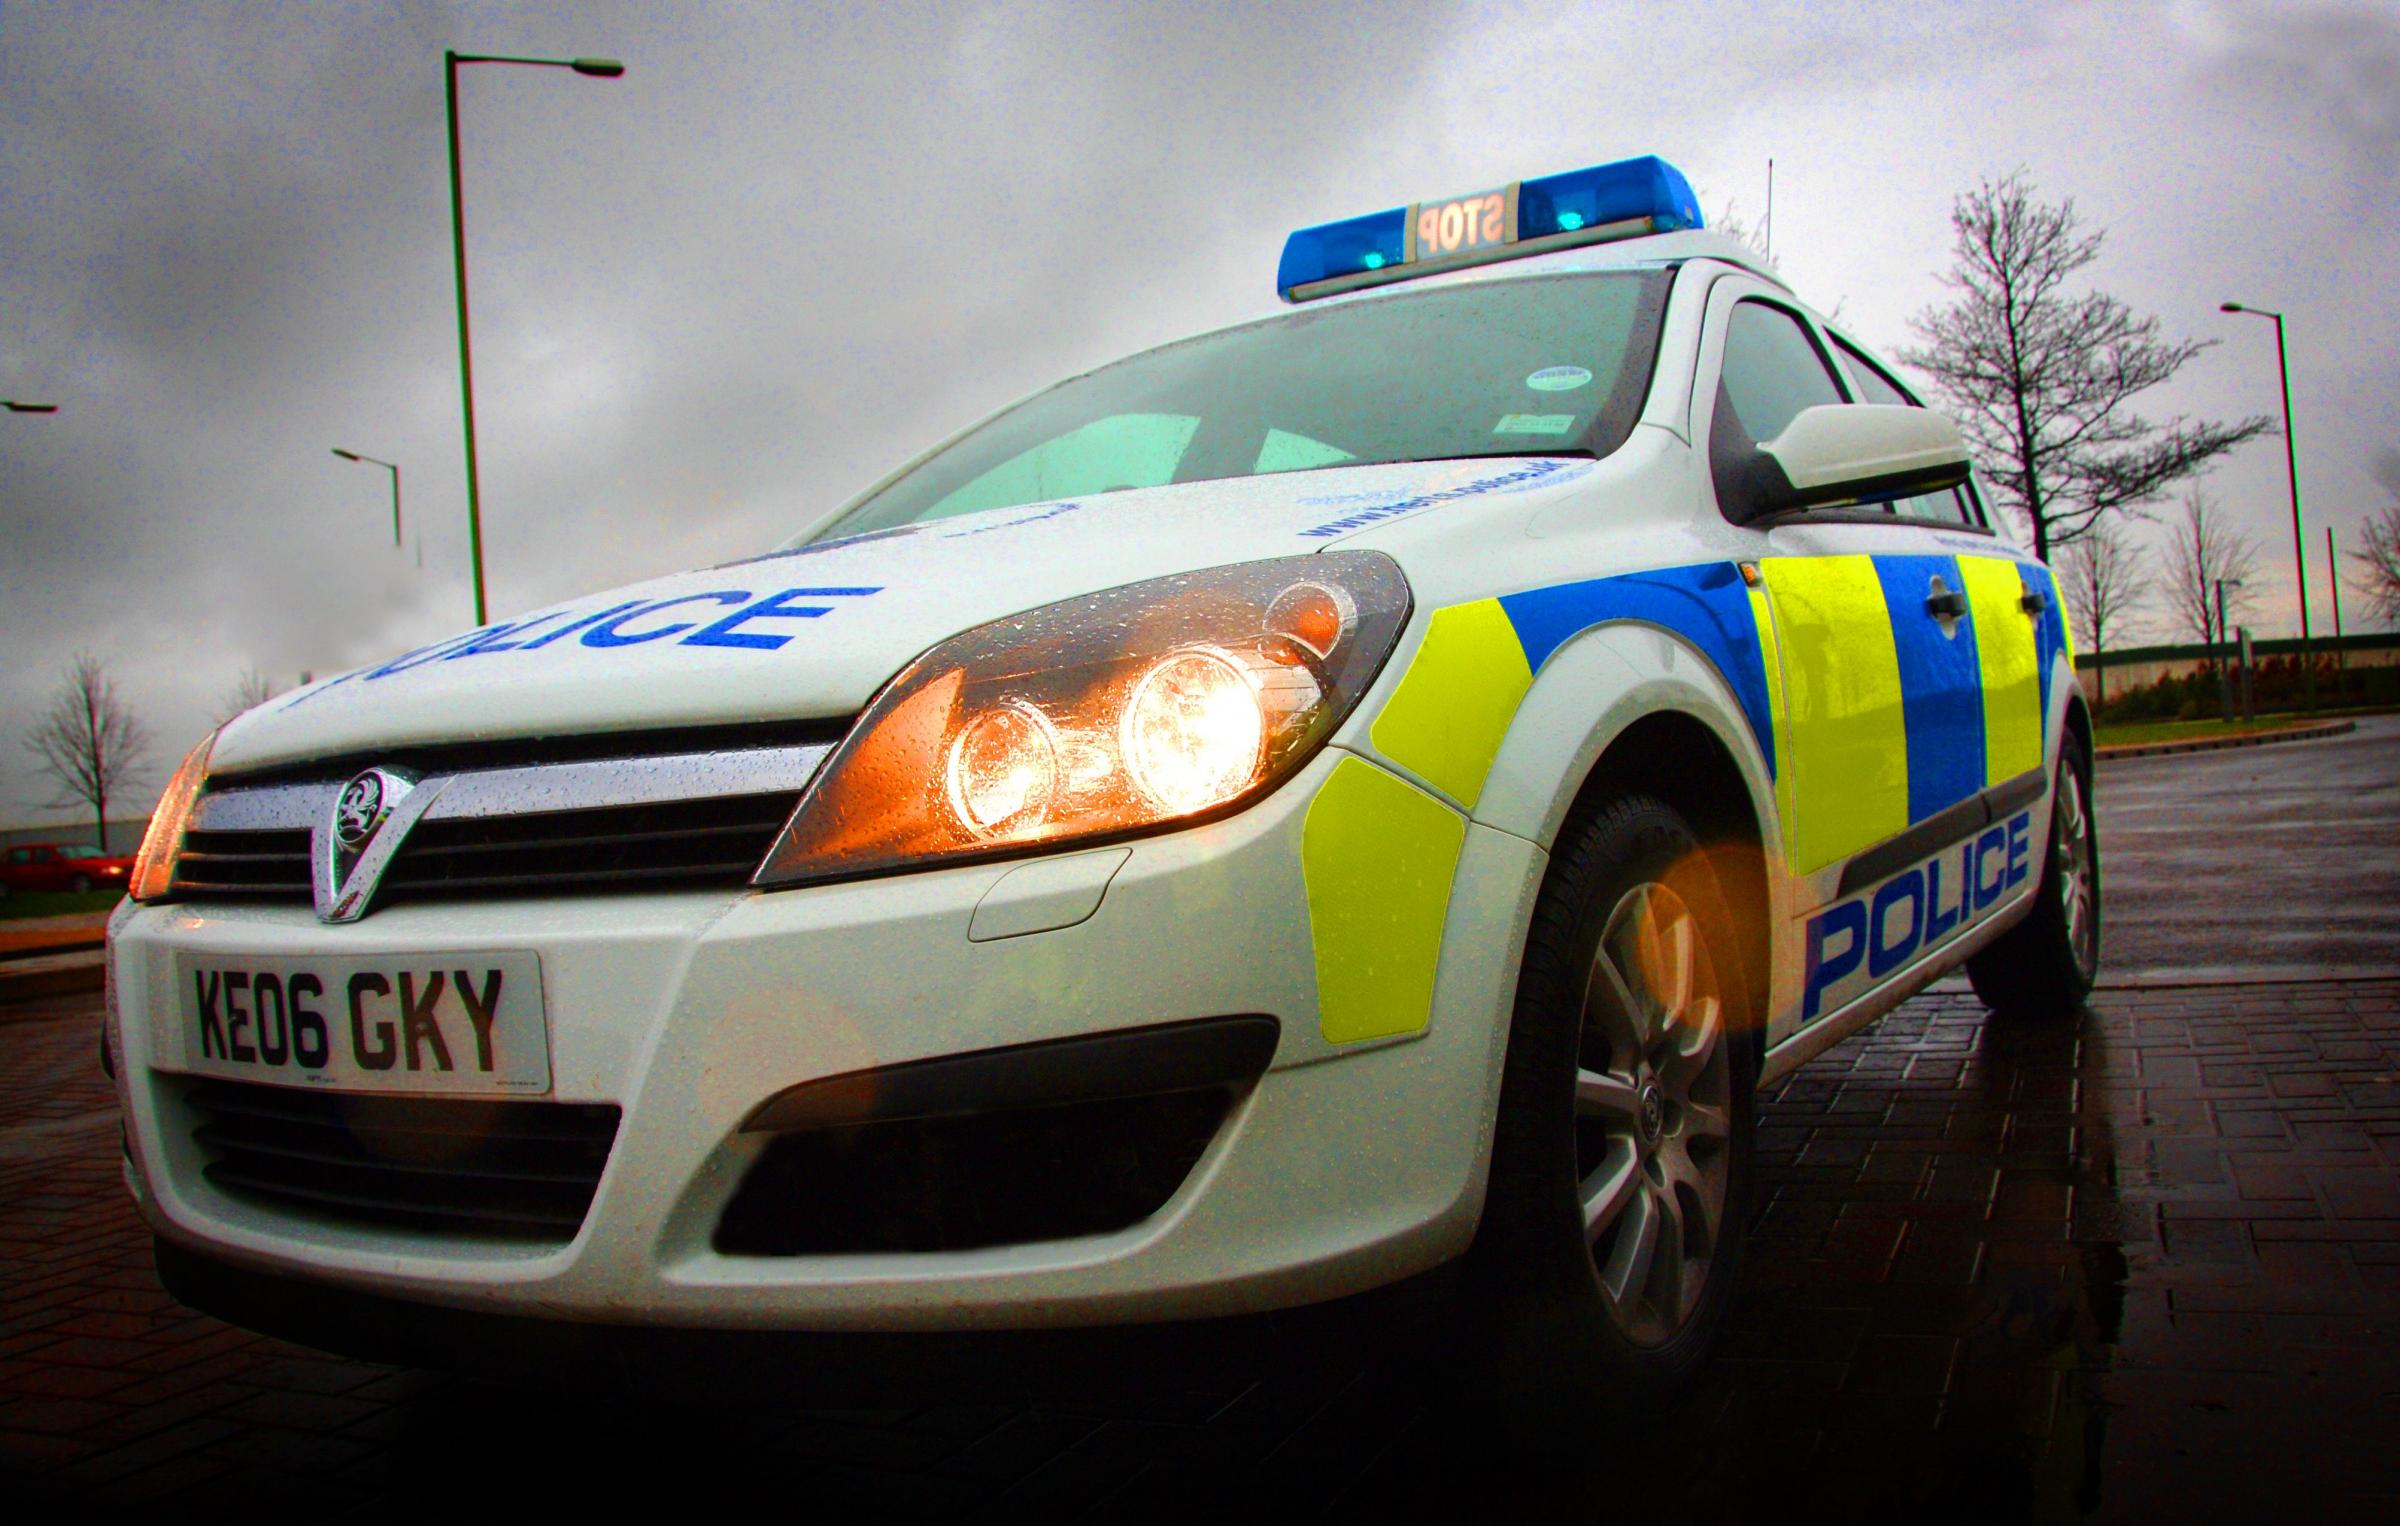 Police seek witnesses after Wythall burglary